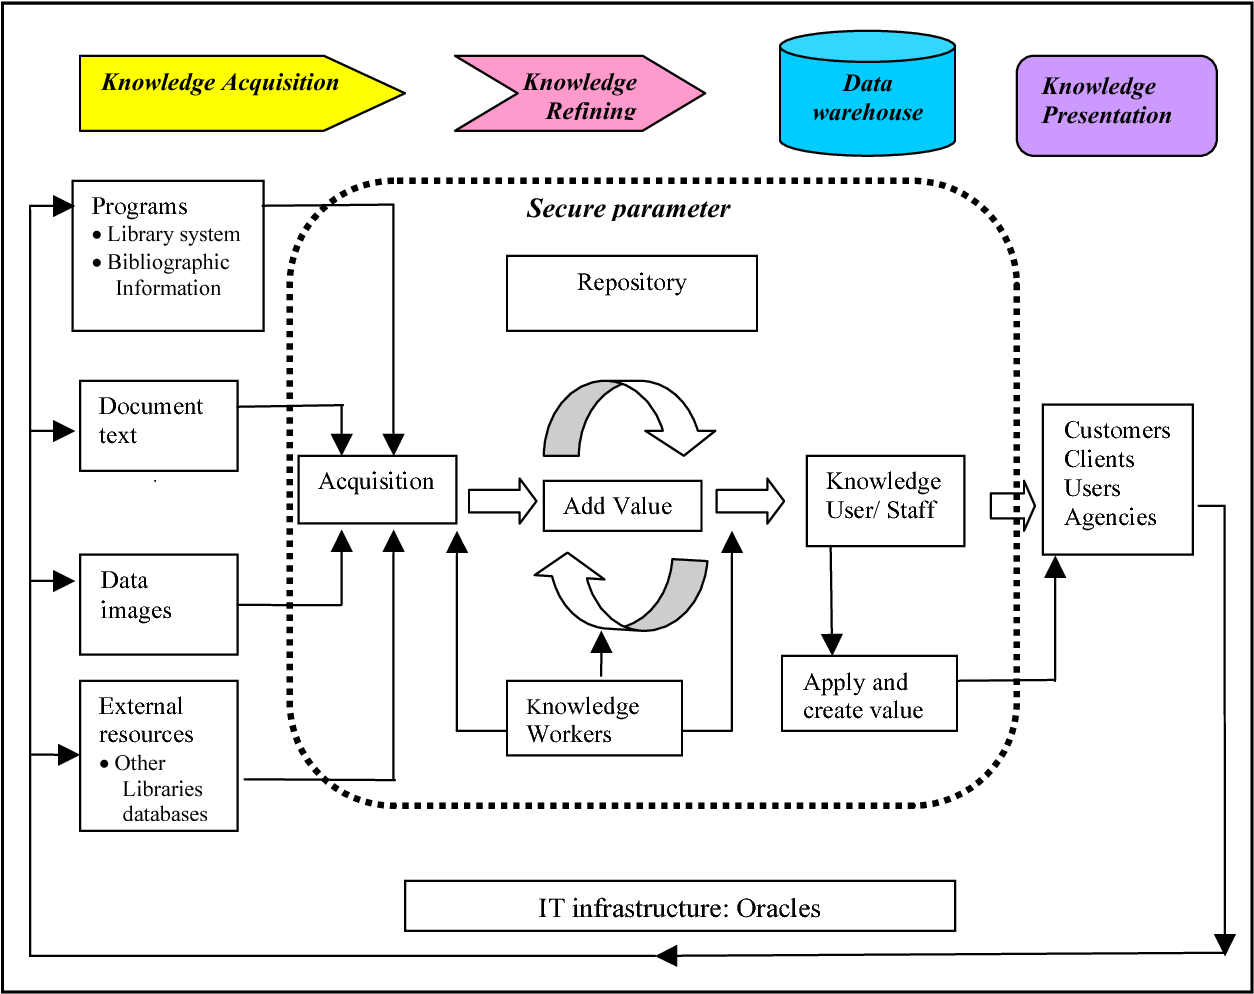 Pdf Nlm Knowledge Bank A Framework Of Managing Knowledge In The National Library Of Malaysia Semantic Scholar